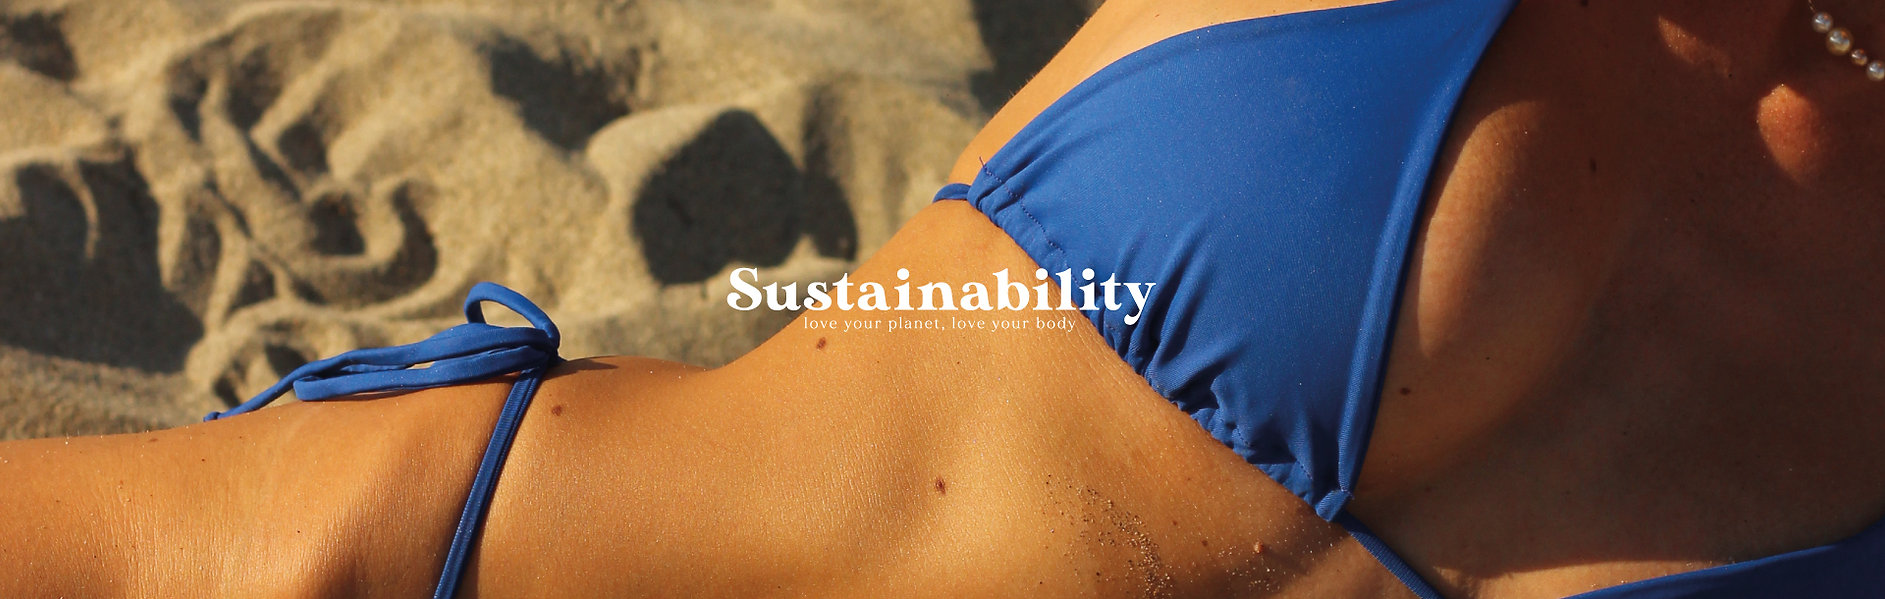 sustainability-cover.jpg